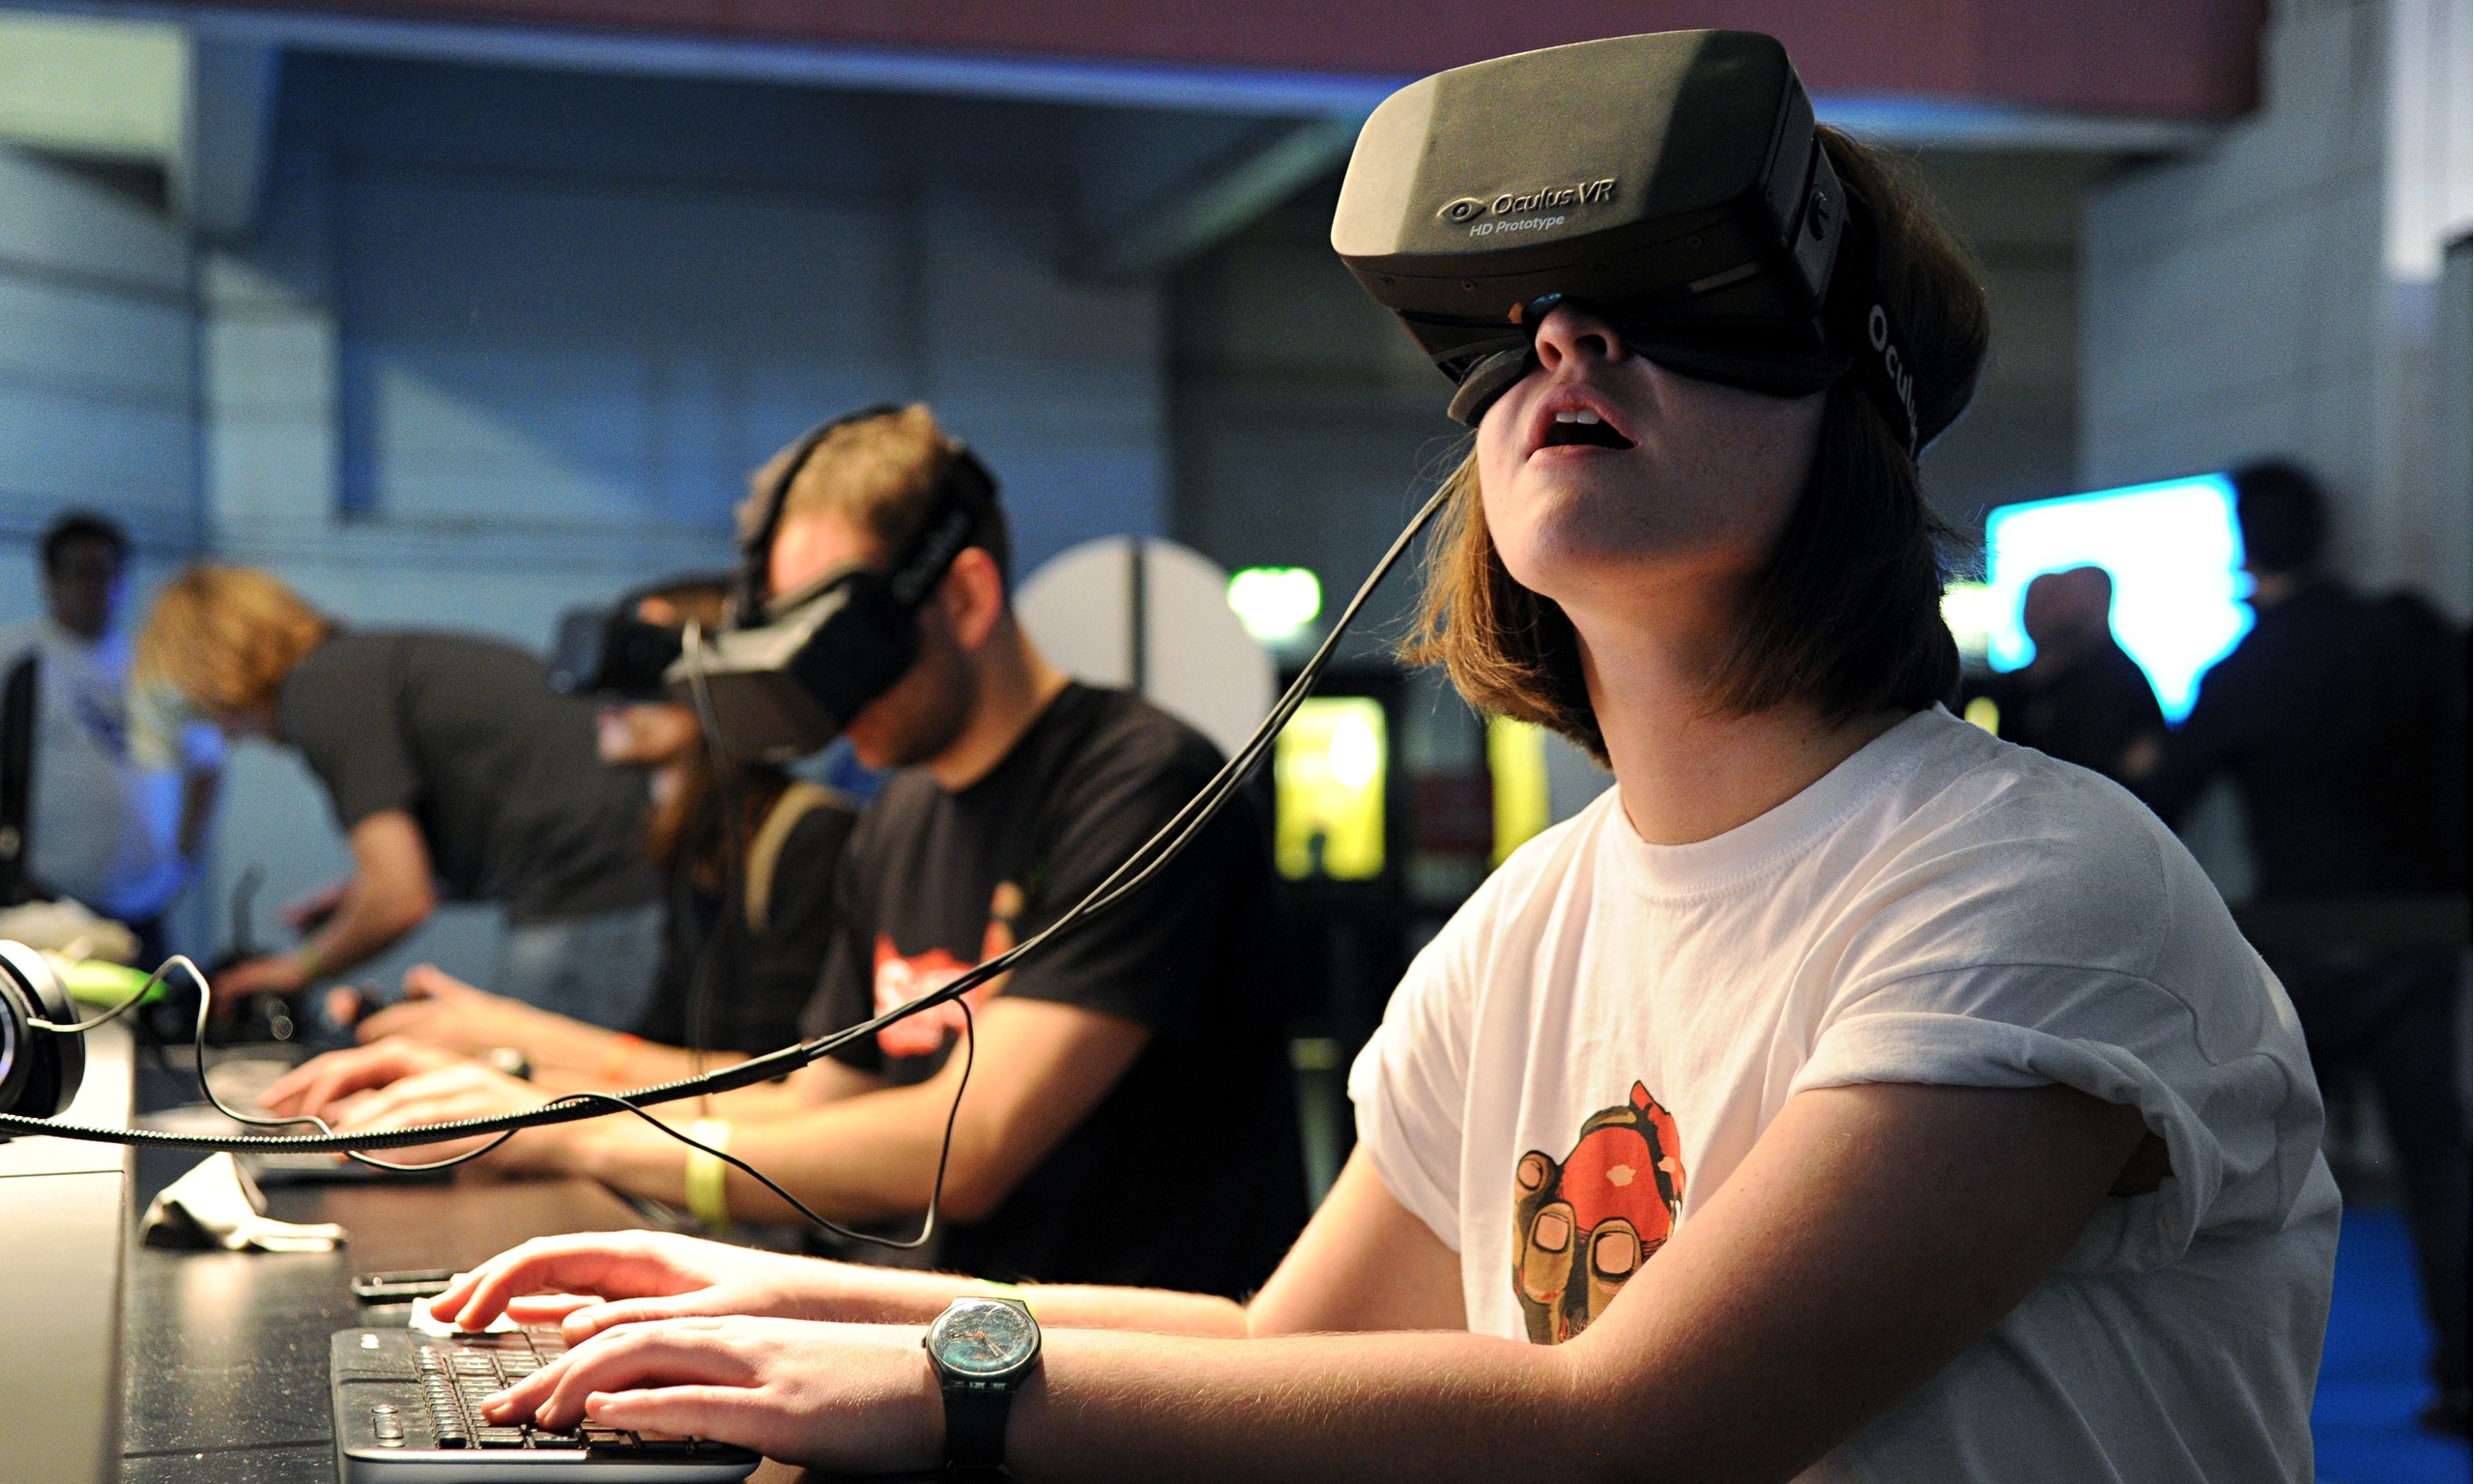 http://www.doyugames.com/blog/images/The-Oculus-Rift-headset-i-012.jpg